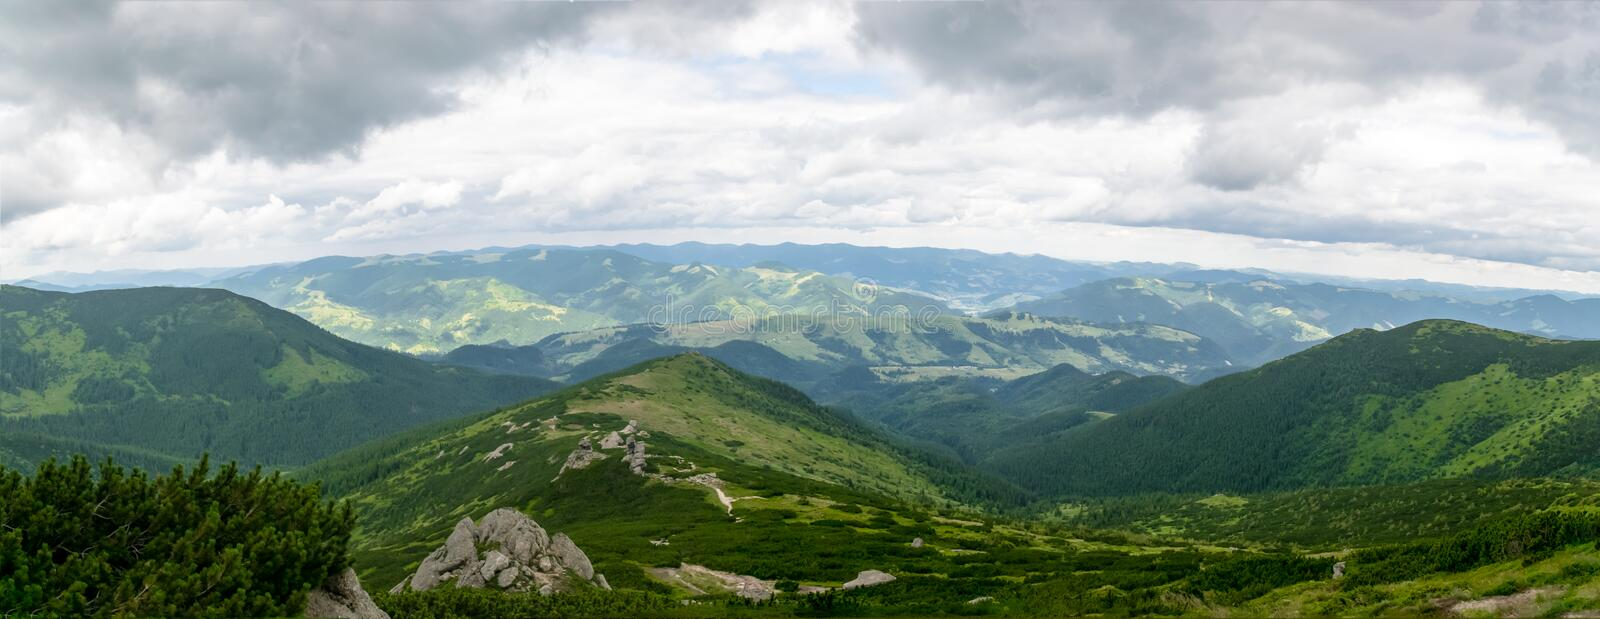 Summer mountain landscape panorama royalty free stock photo